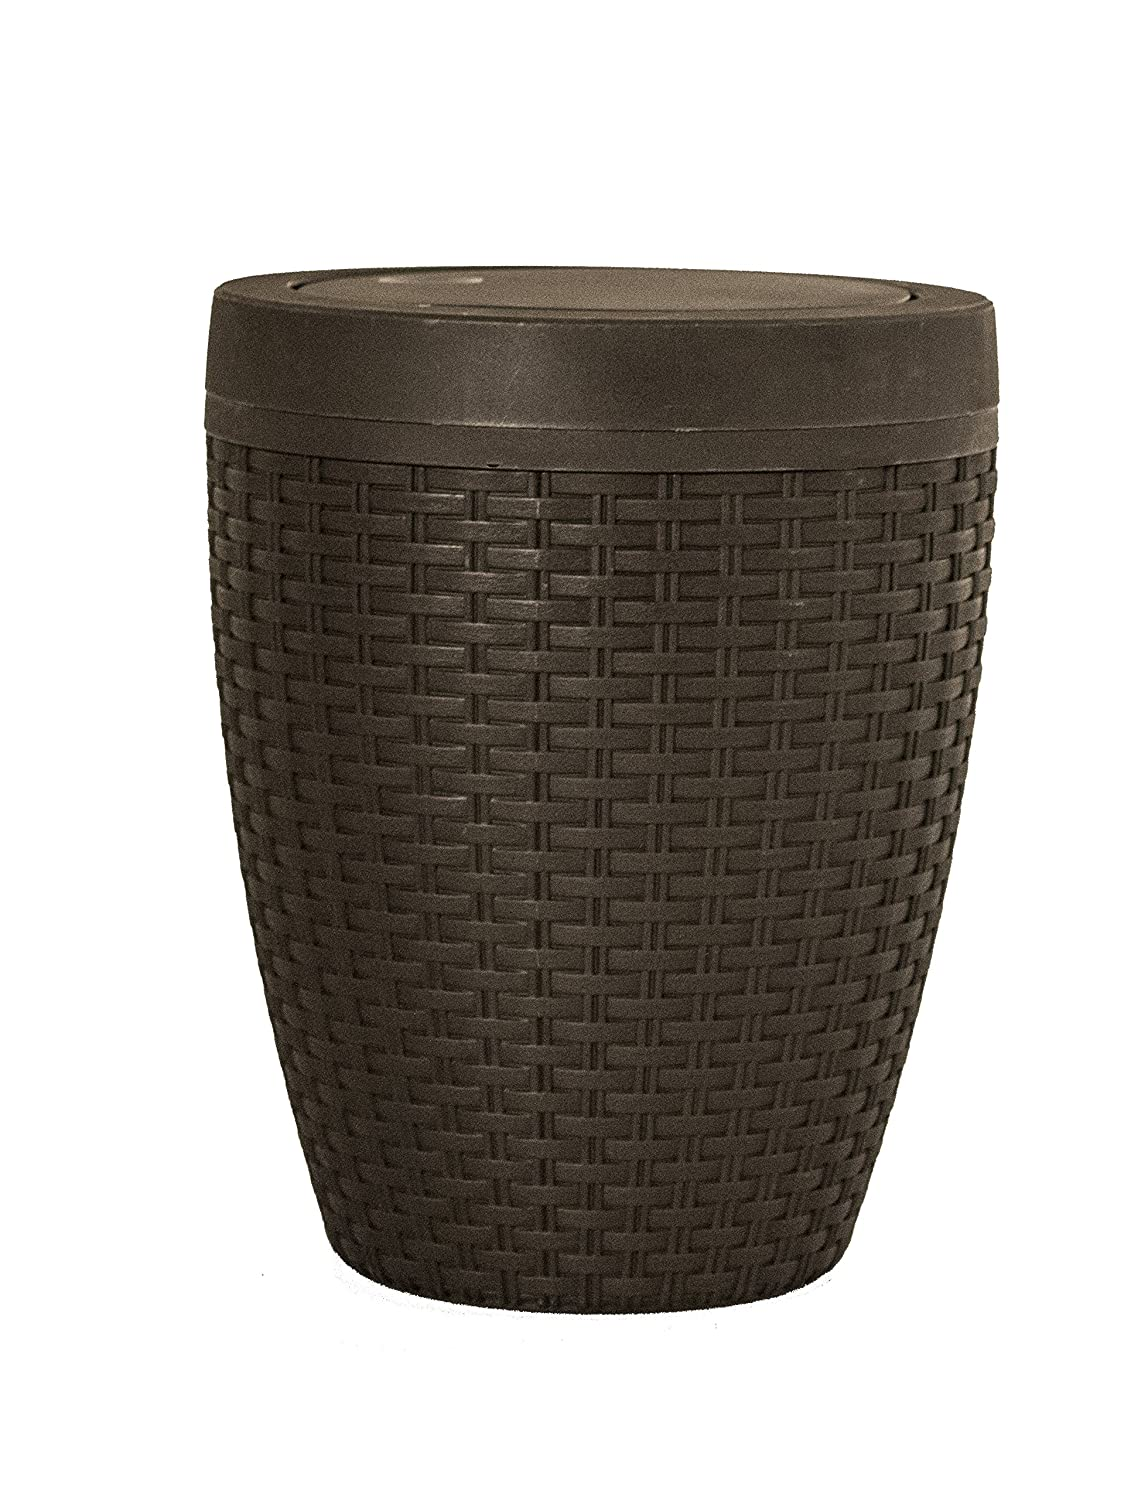 1.63-Gal Round Trash Can Color: Beige Superior Performance 456